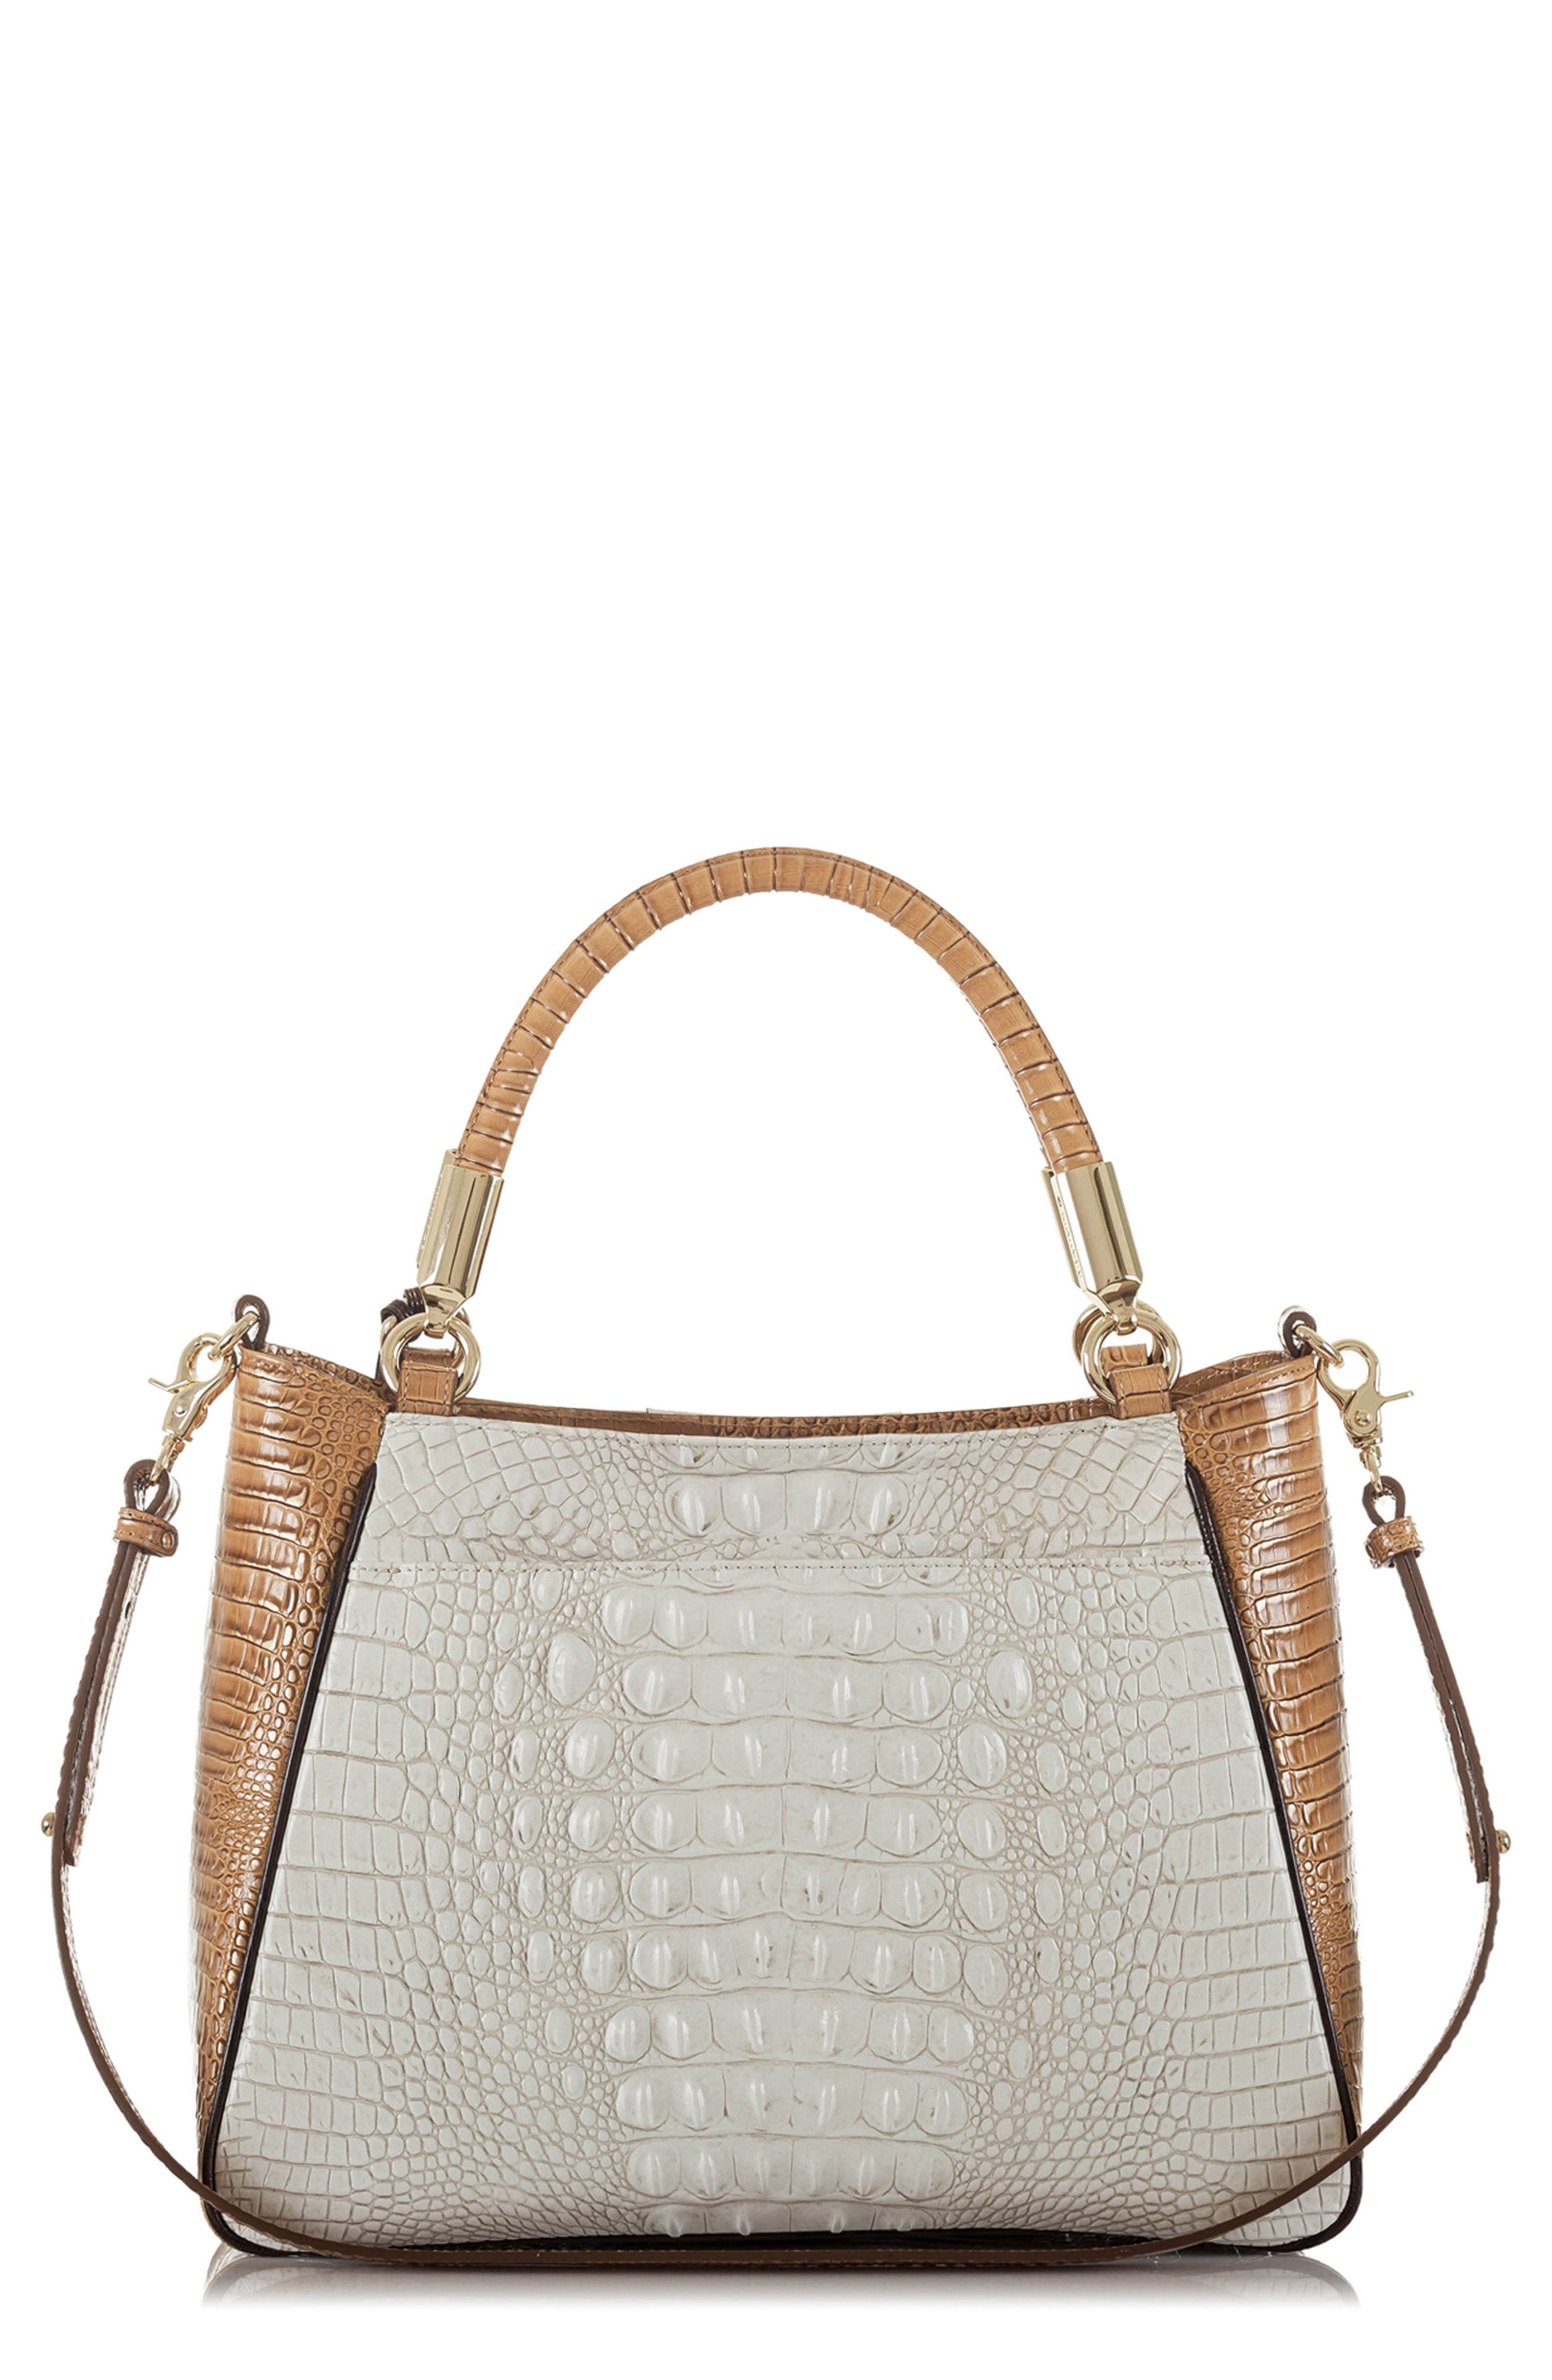 Ruby Croc Embossed Leather Satchel,                             Main thumbnail 1, color,                             Coconut Kedima